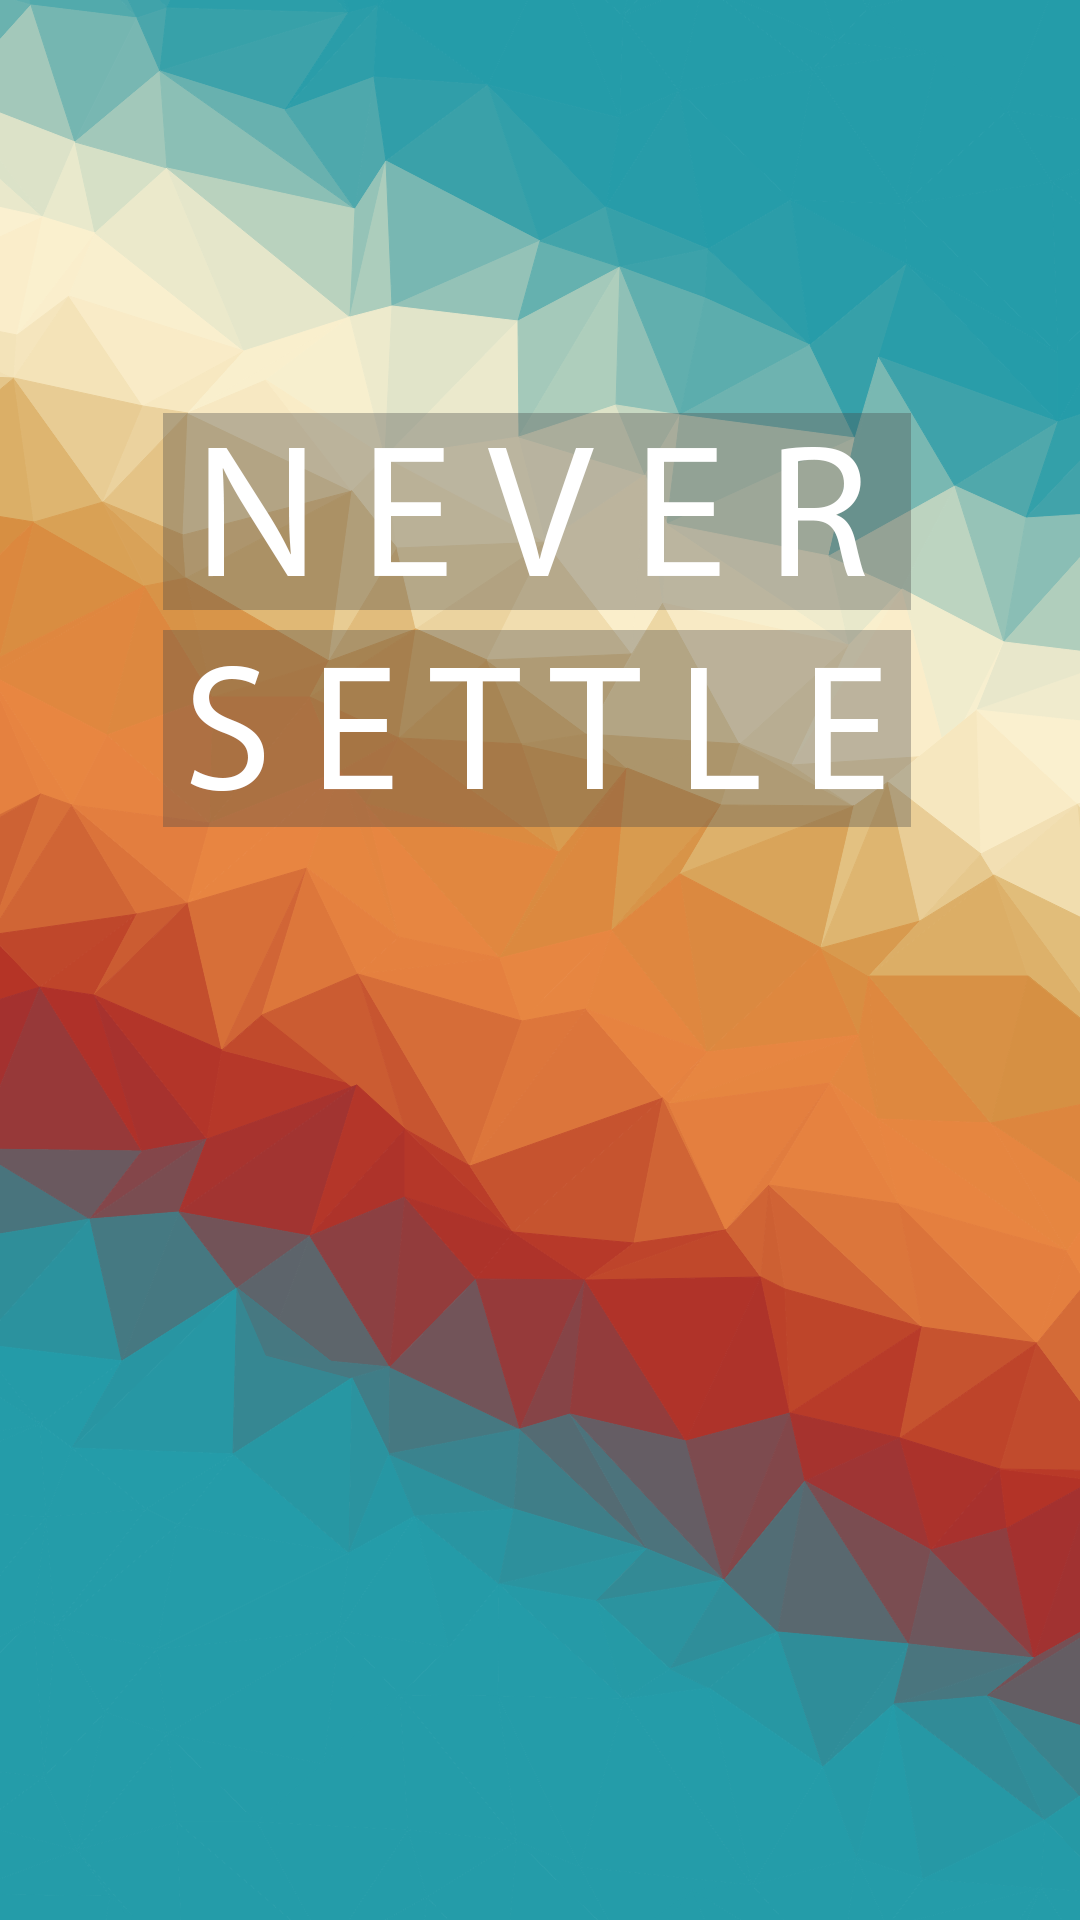 Itching For The Oneplus 2 Get Your Fix With These Wallpapers